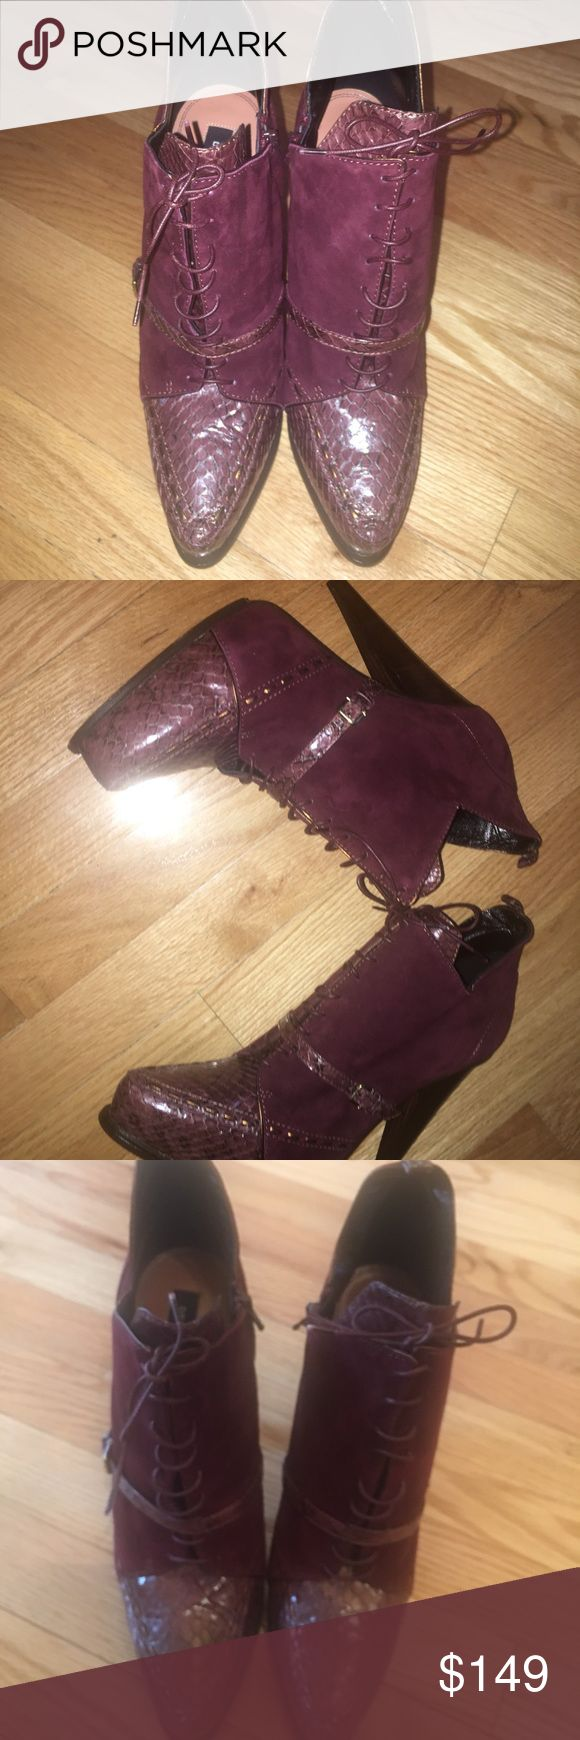 "Derek Lam suede prune color boots size 10 These are new in box w dust bag. They are a prune color snake/suede with a side zipper. Lace up. Thick 5""heel. Made in Italy. These are a size 10m and they run true to size. Derek Lam Shoes Ankle Boots & Booties"